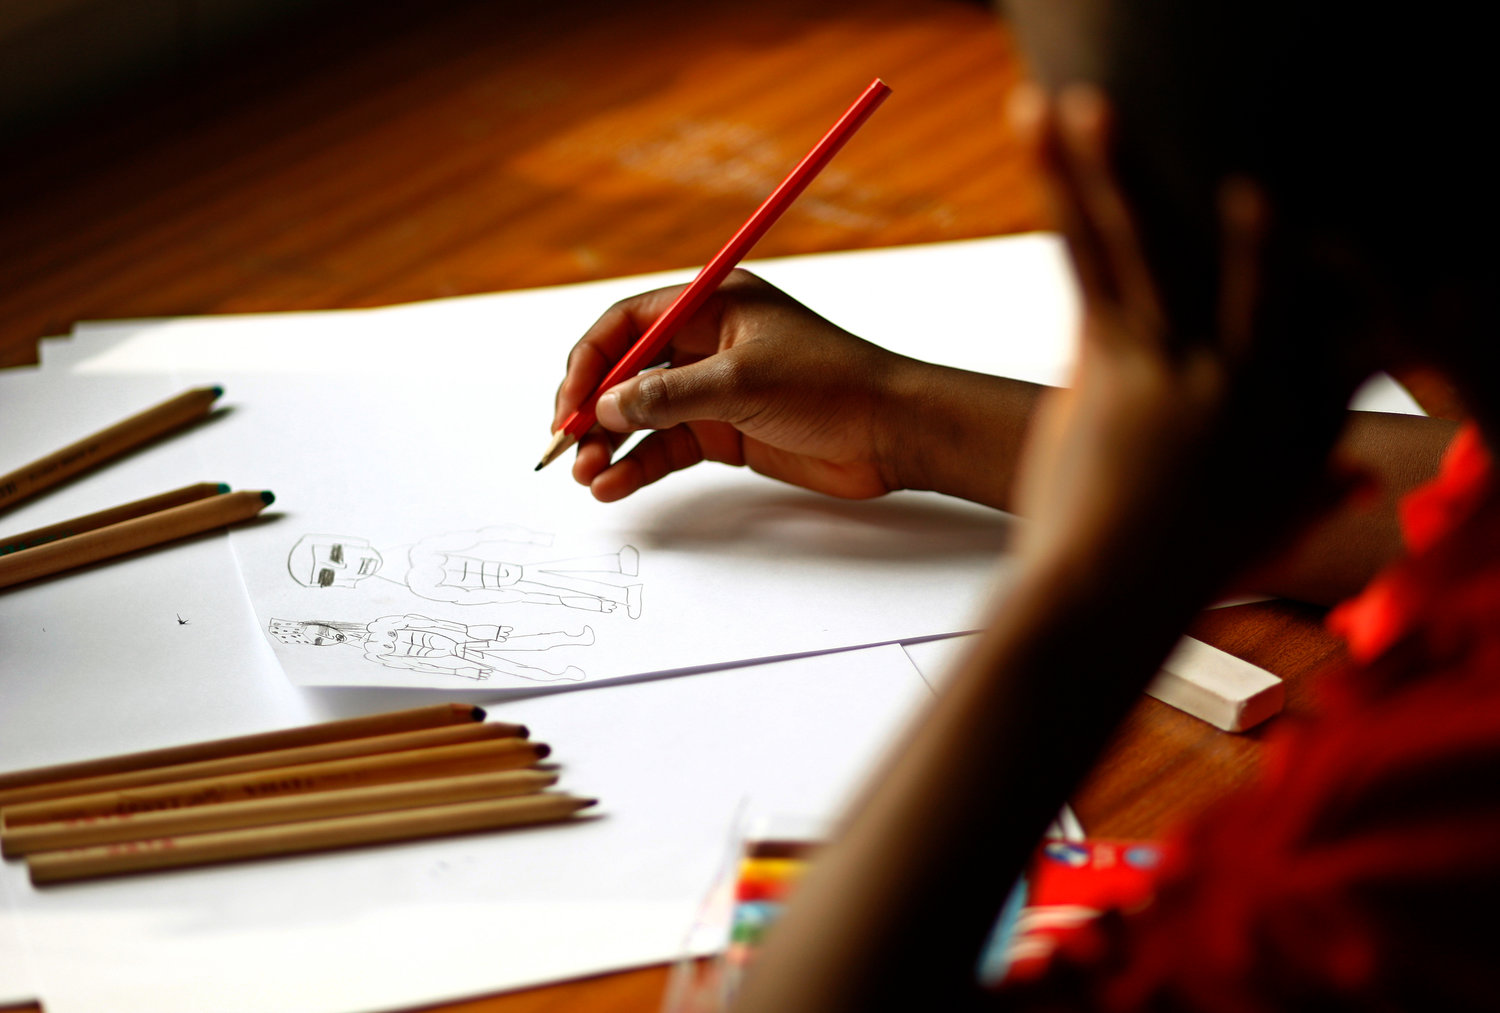 A child is pictured drawing during a therapy session.